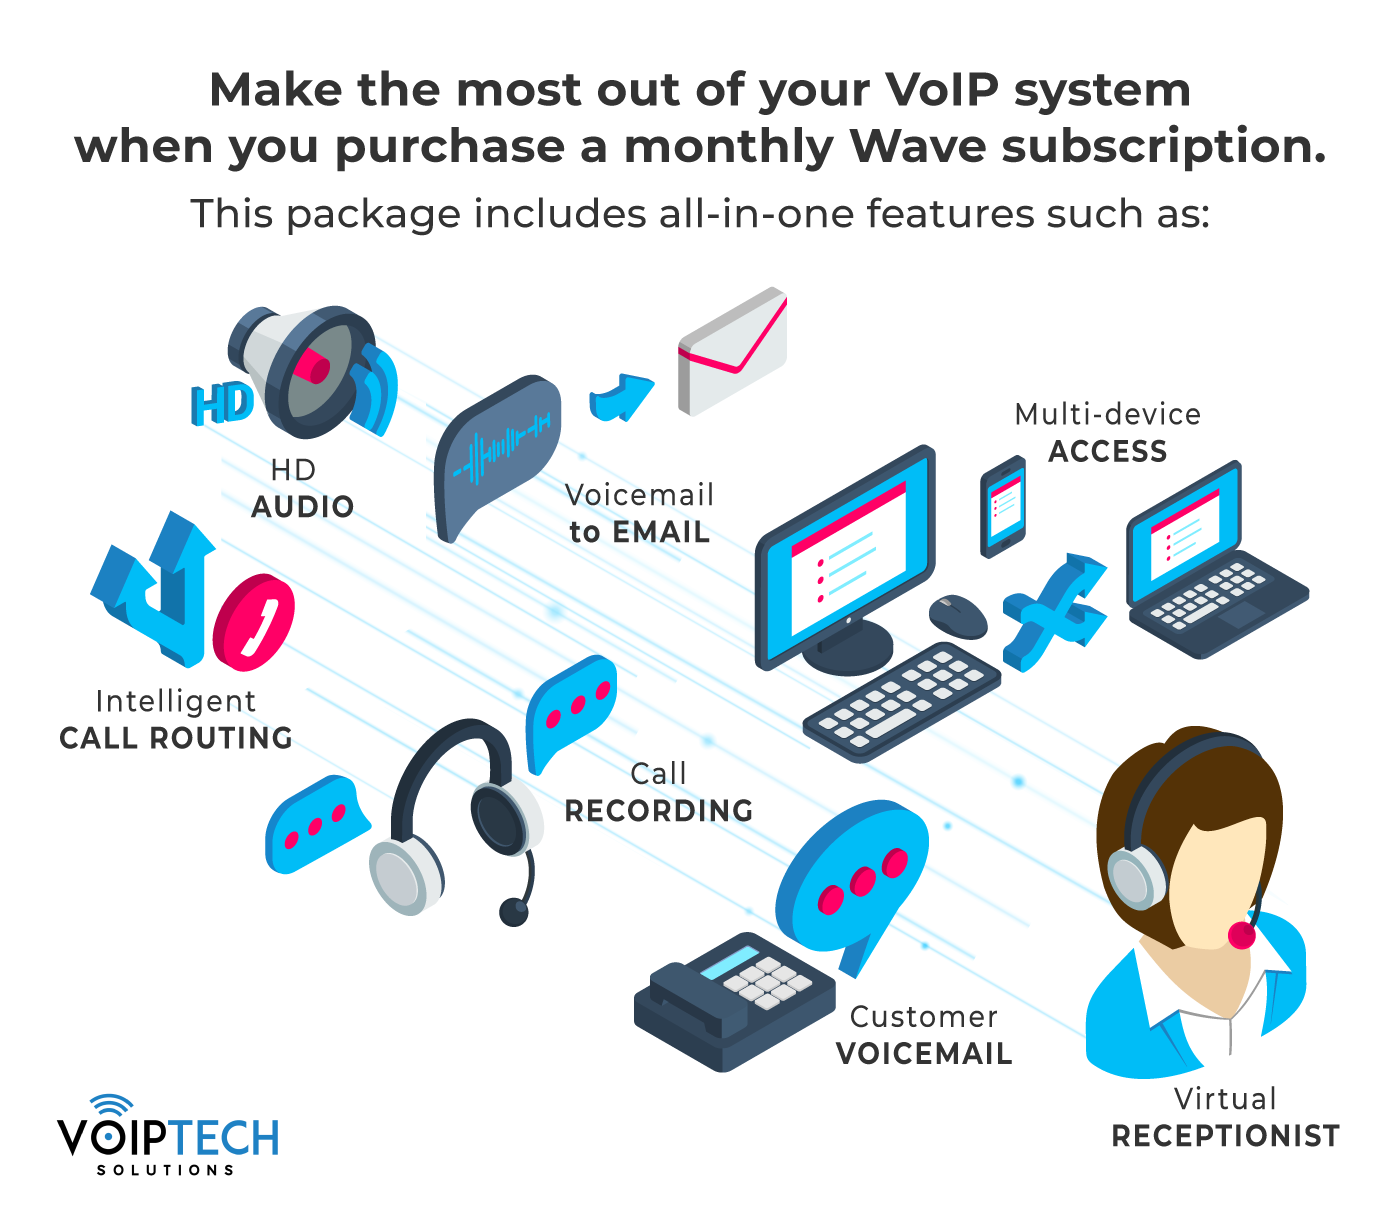 Voiptech Infographic img 1 1